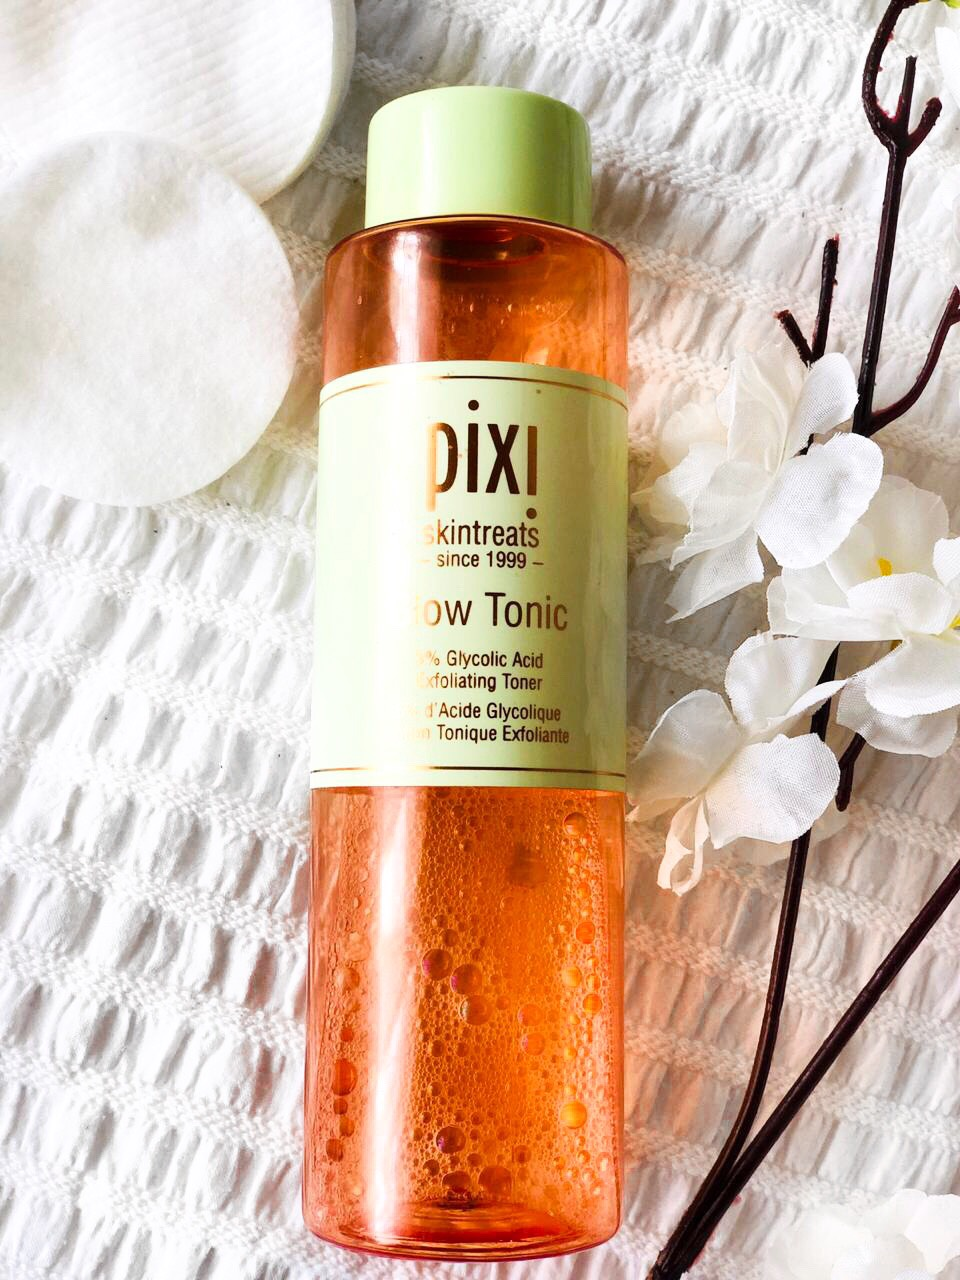 OSHINITY PIXI GLOW TONIC CHEMICAL EXFOLIANT BLOG REVIEW NAIROBI KENYA